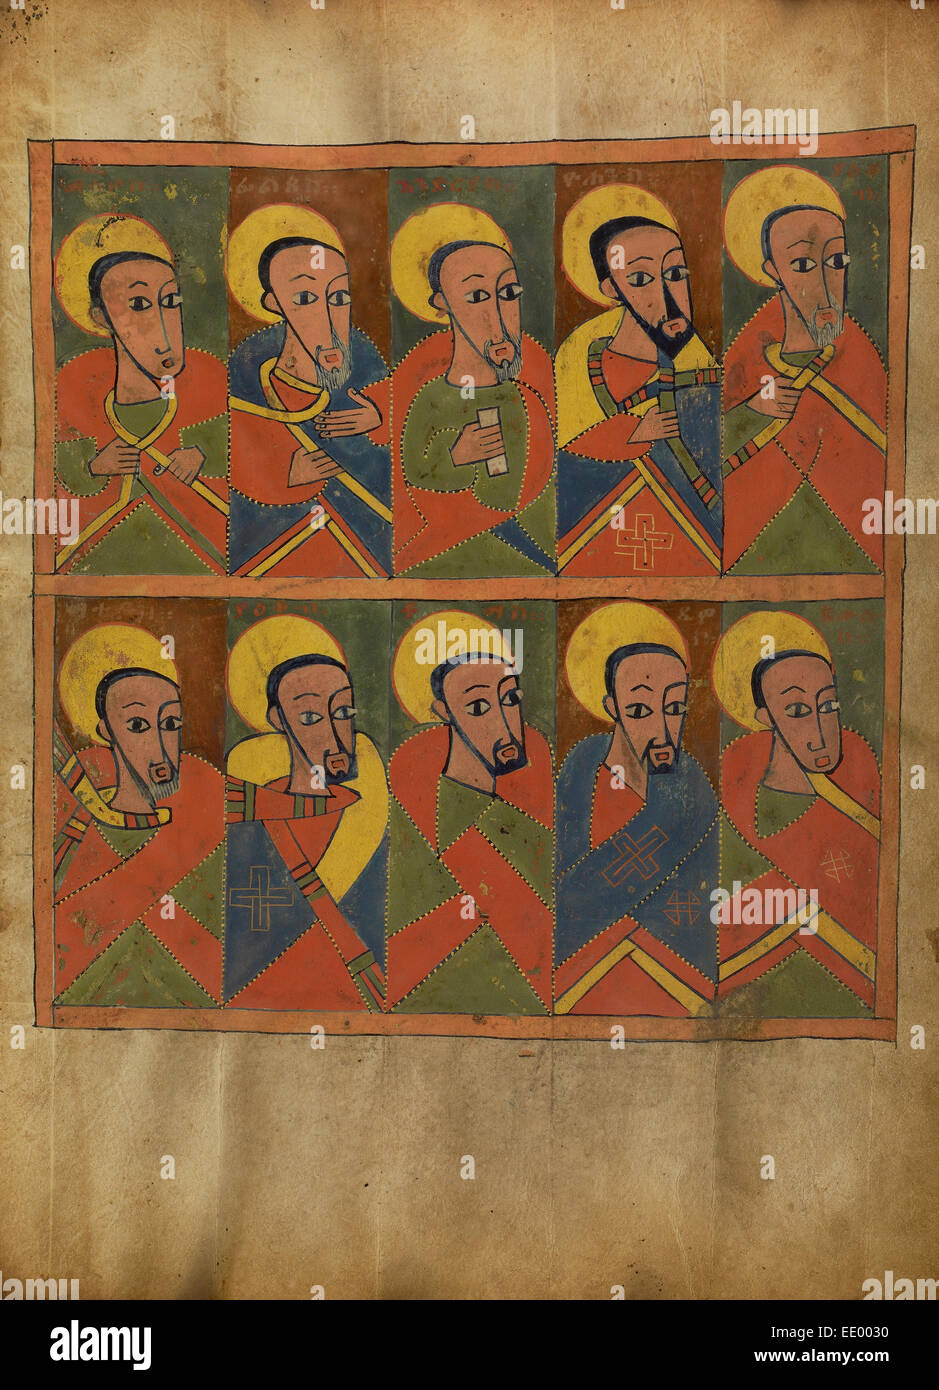 The Apostles; Unknown; Ethiopia, Africa; about 1480 - 1520; Tempera on parchment - Stock Image